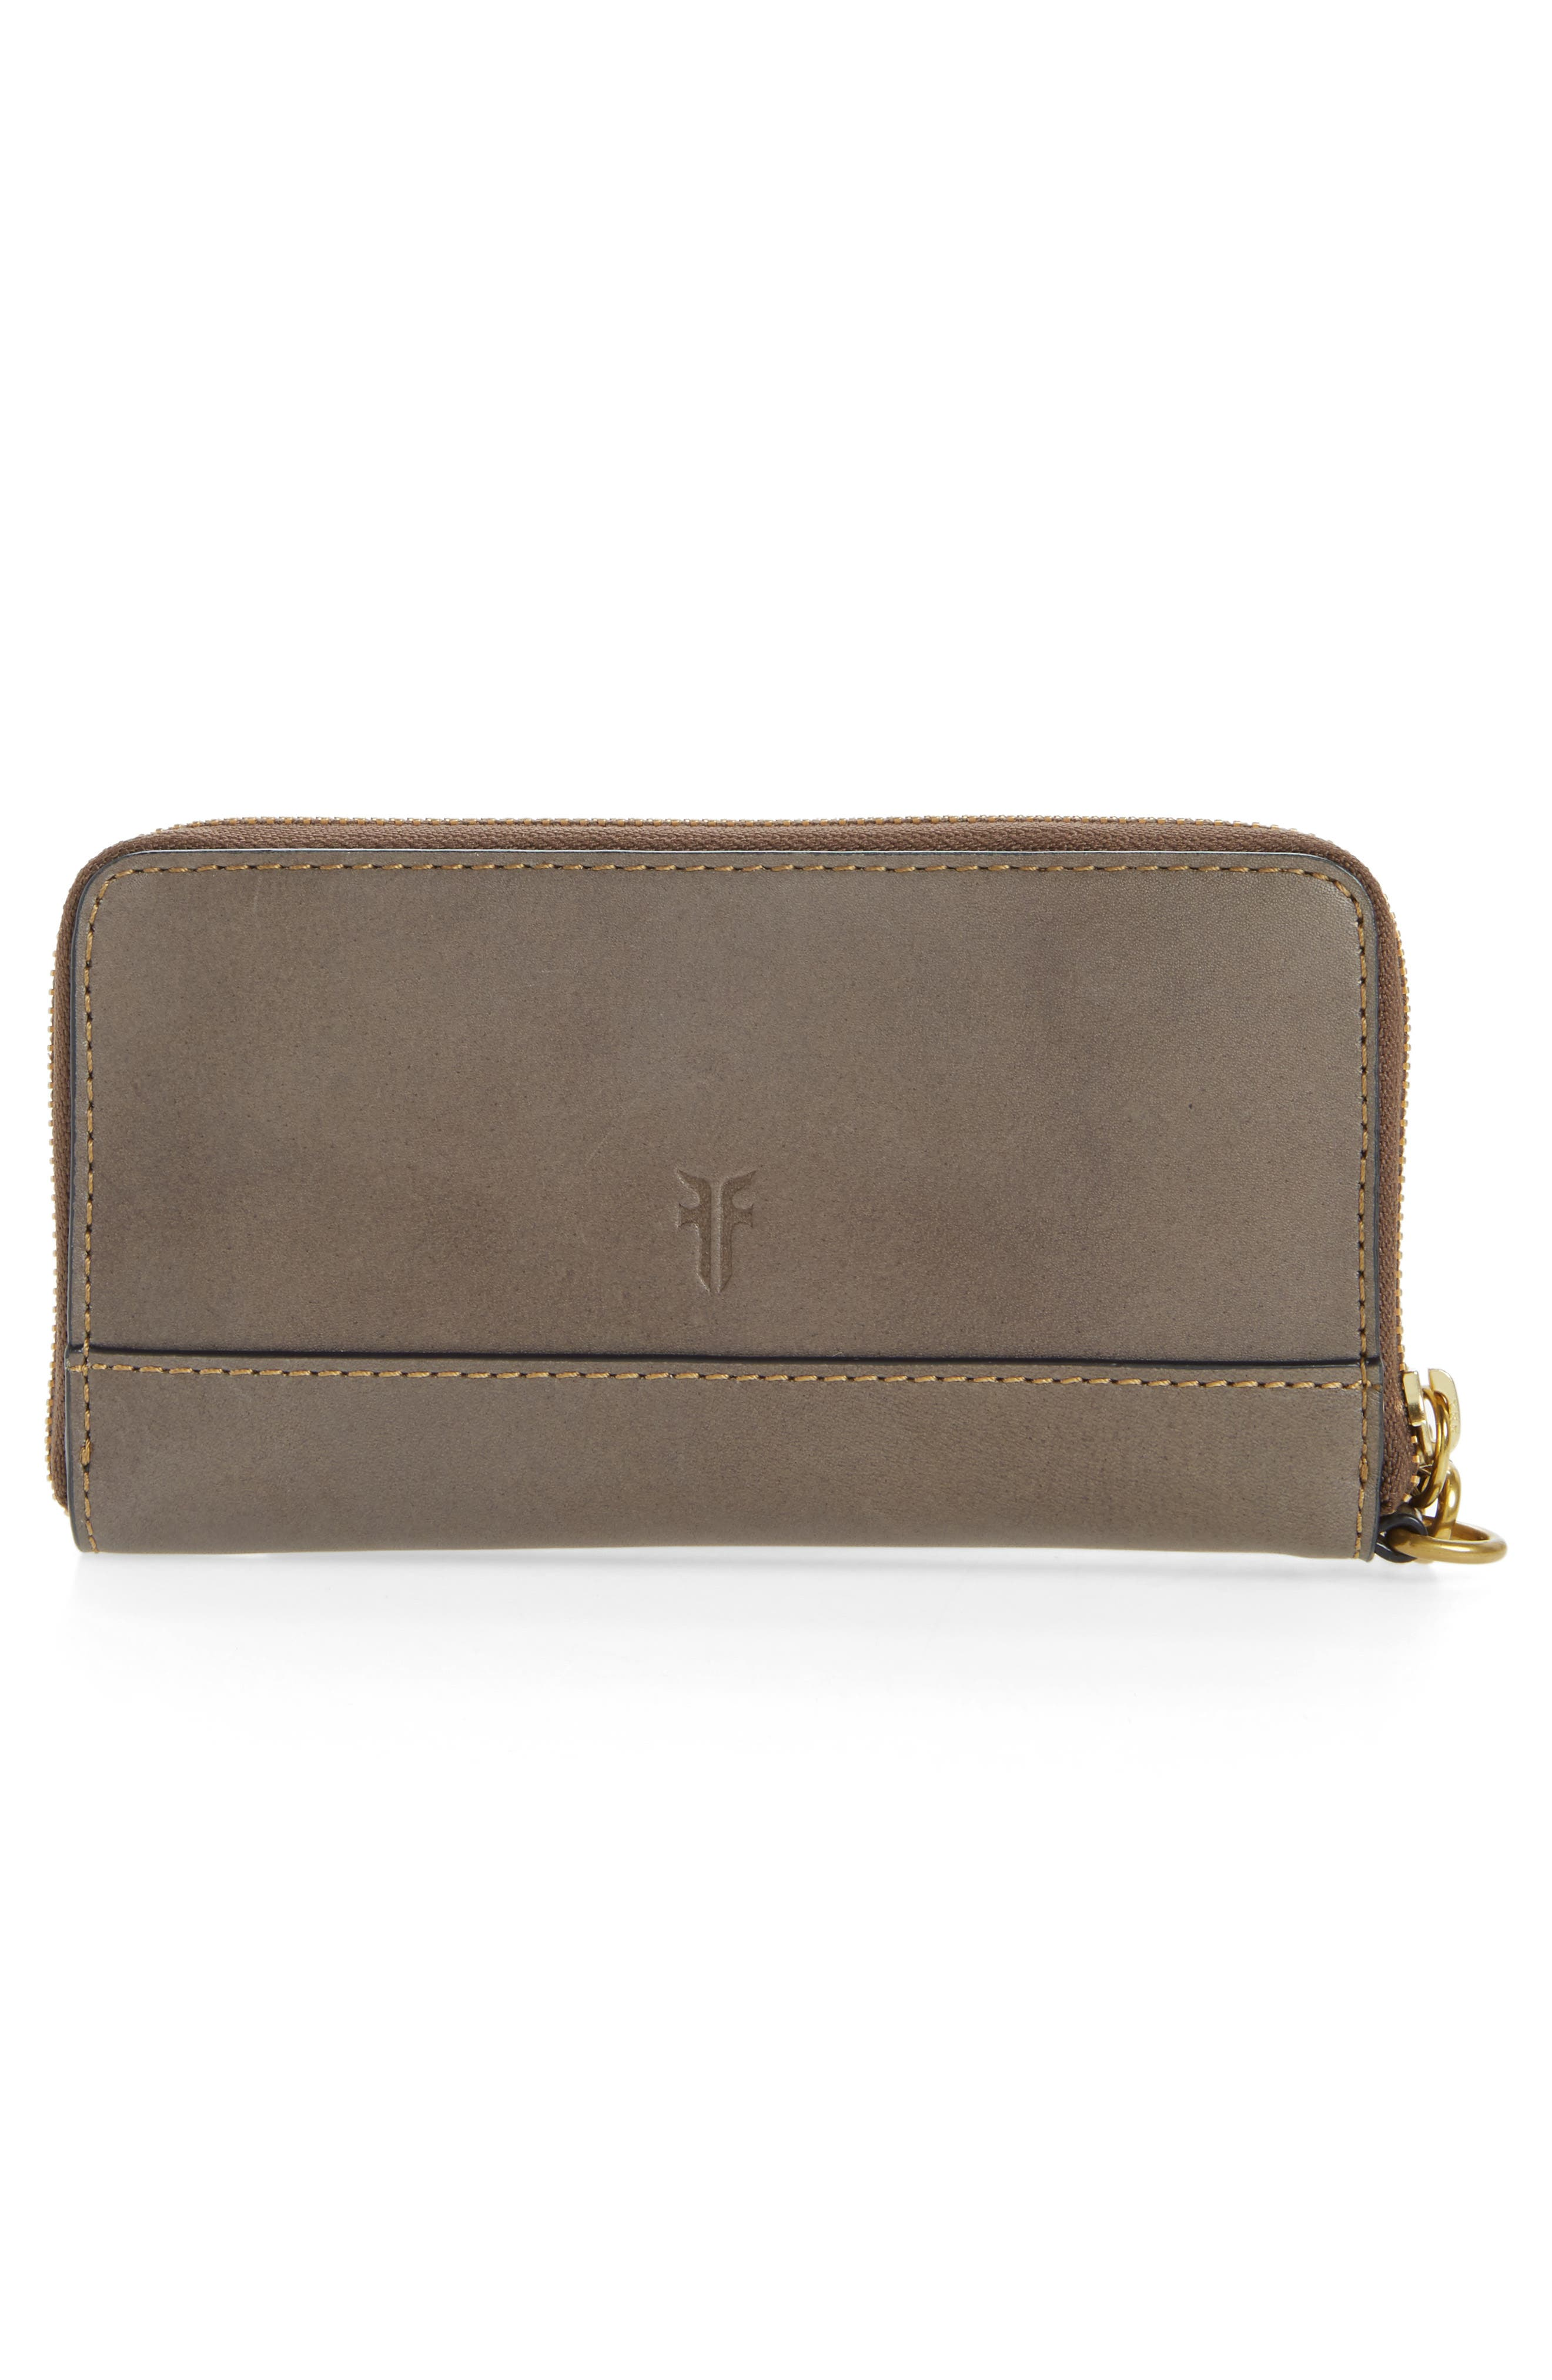 Ilana Harness Phone Leather Zip Wallet,                             Alternate thumbnail 5, color,